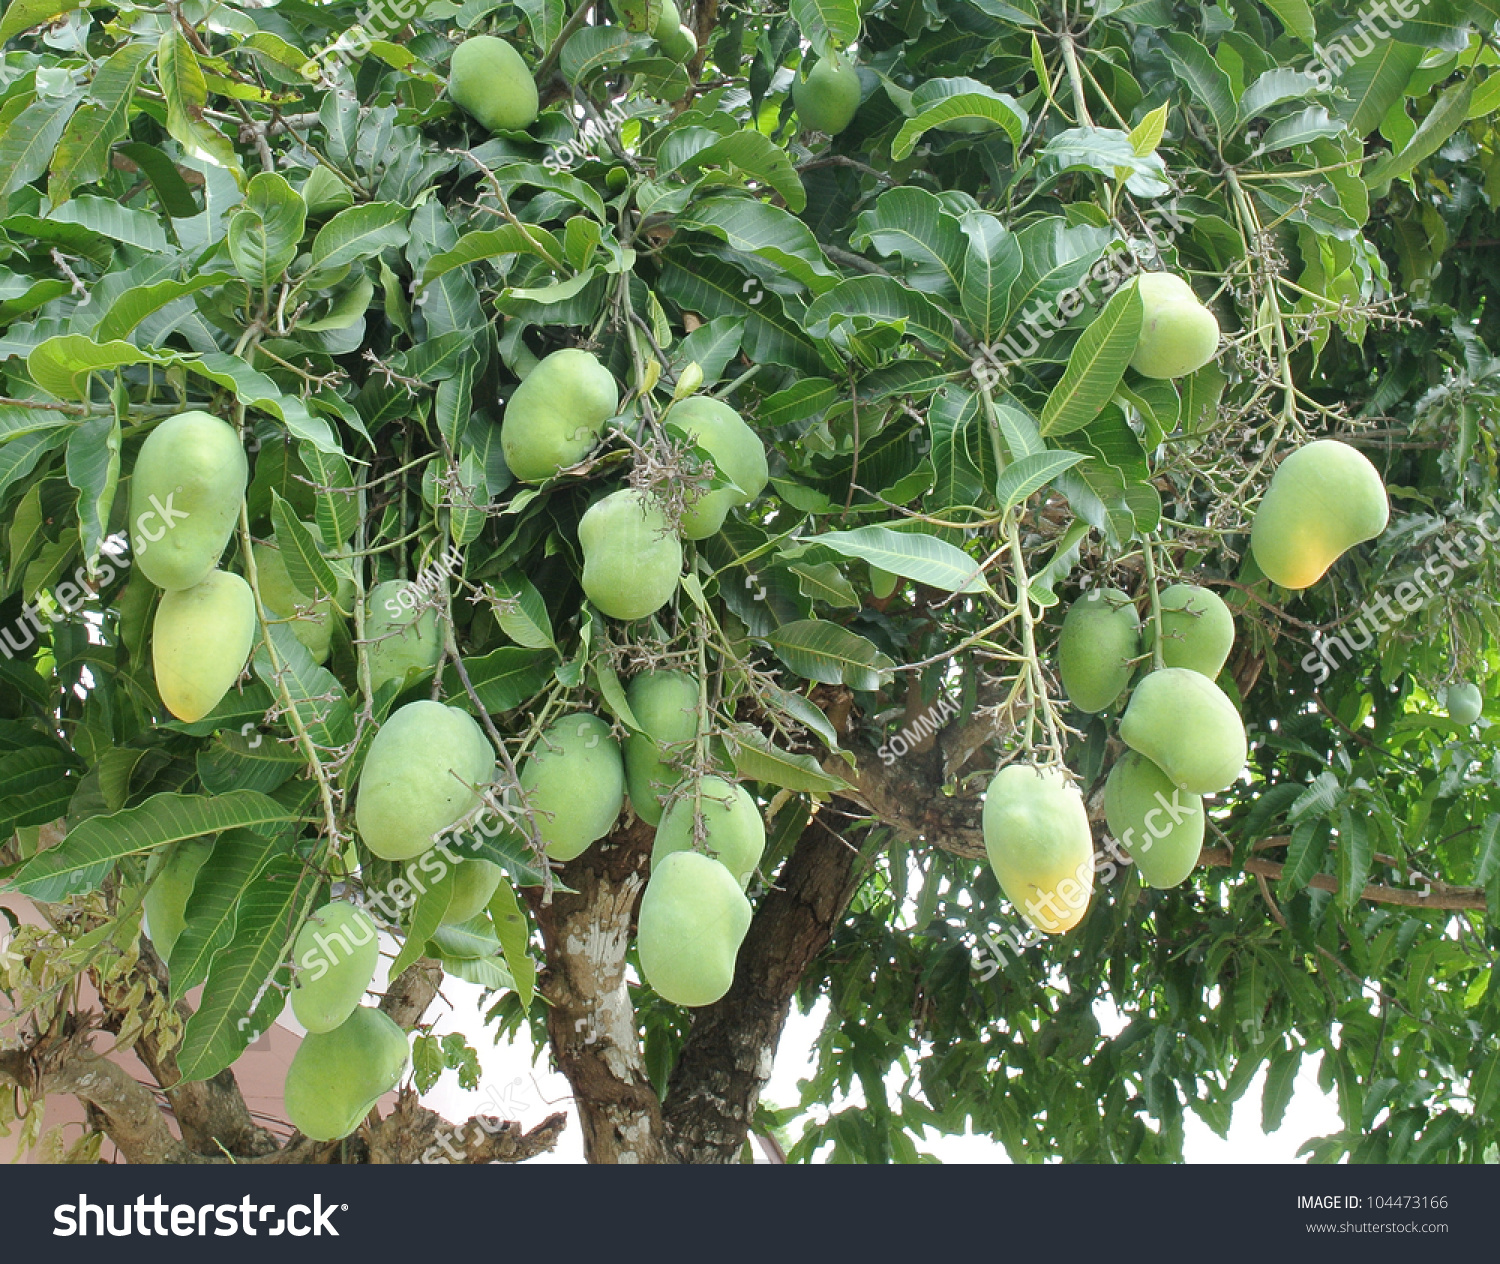 the life of the mango tree From time immemorial, the mango, known as the king of fruits, has been an important part of indian life mangos have historically been revered as symbols of life.